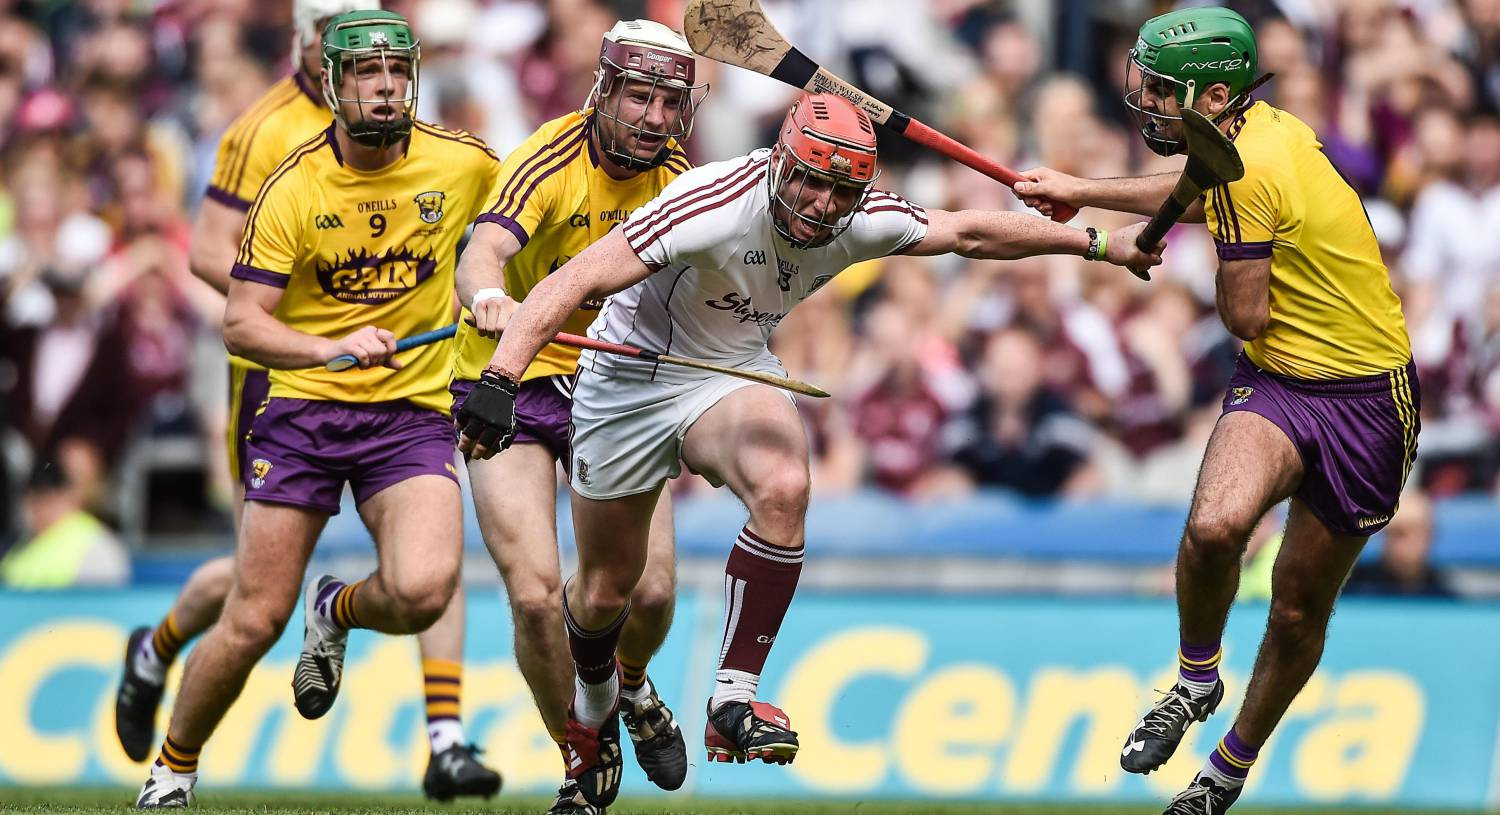 Cork to face Waterford for Munster hurling final spot